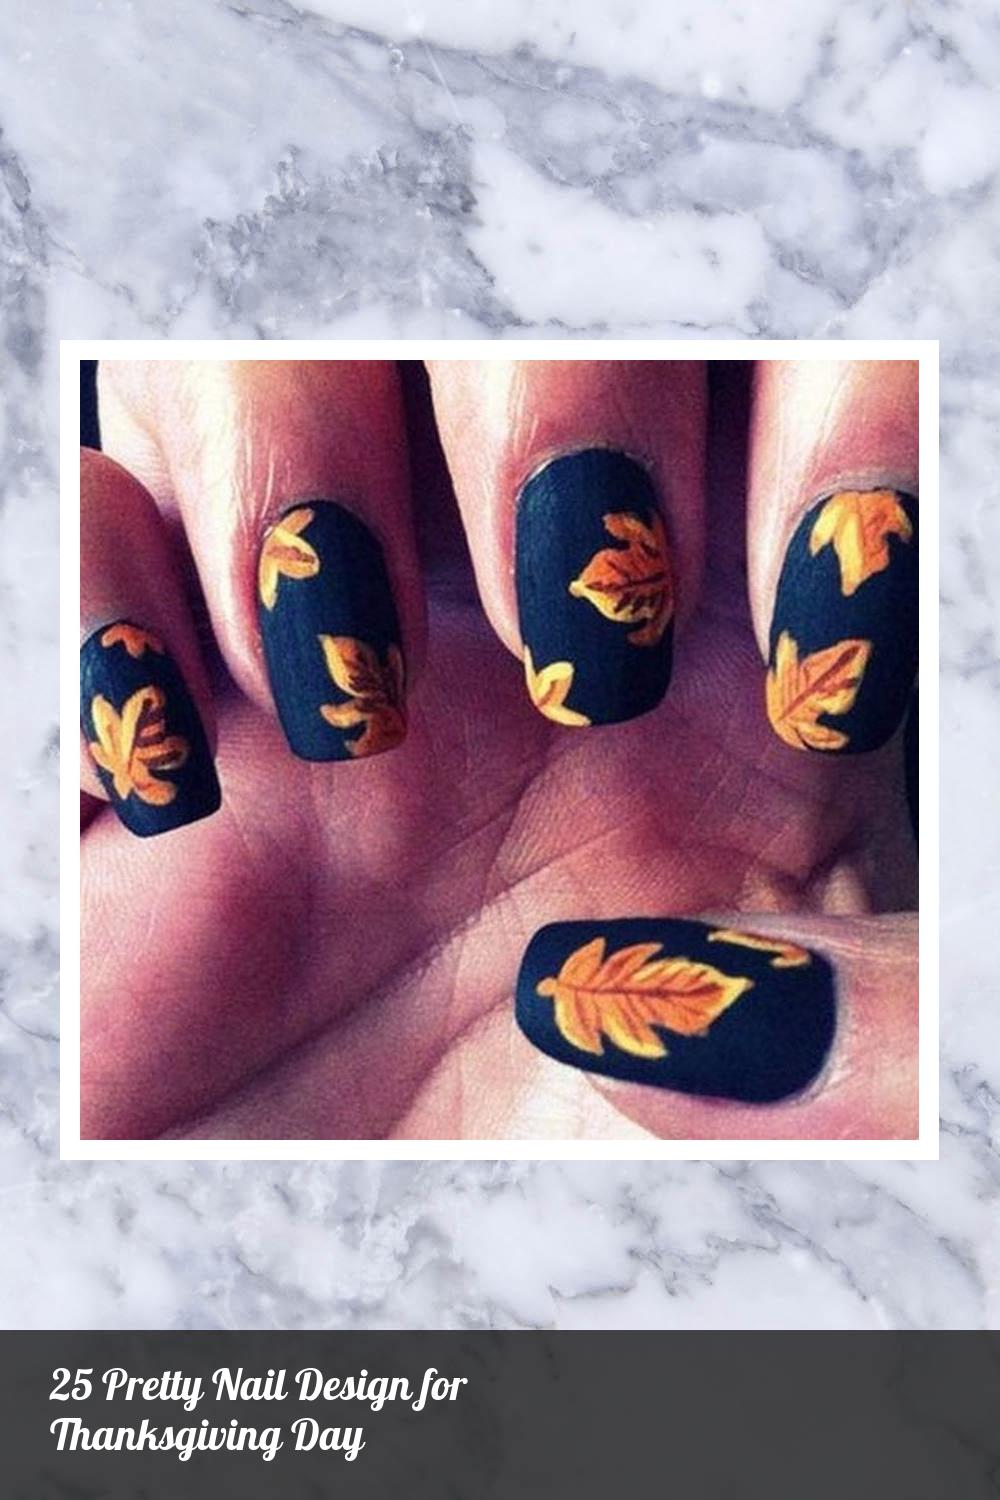 25 Pretty Nail Design for Thanksgiving Day 13